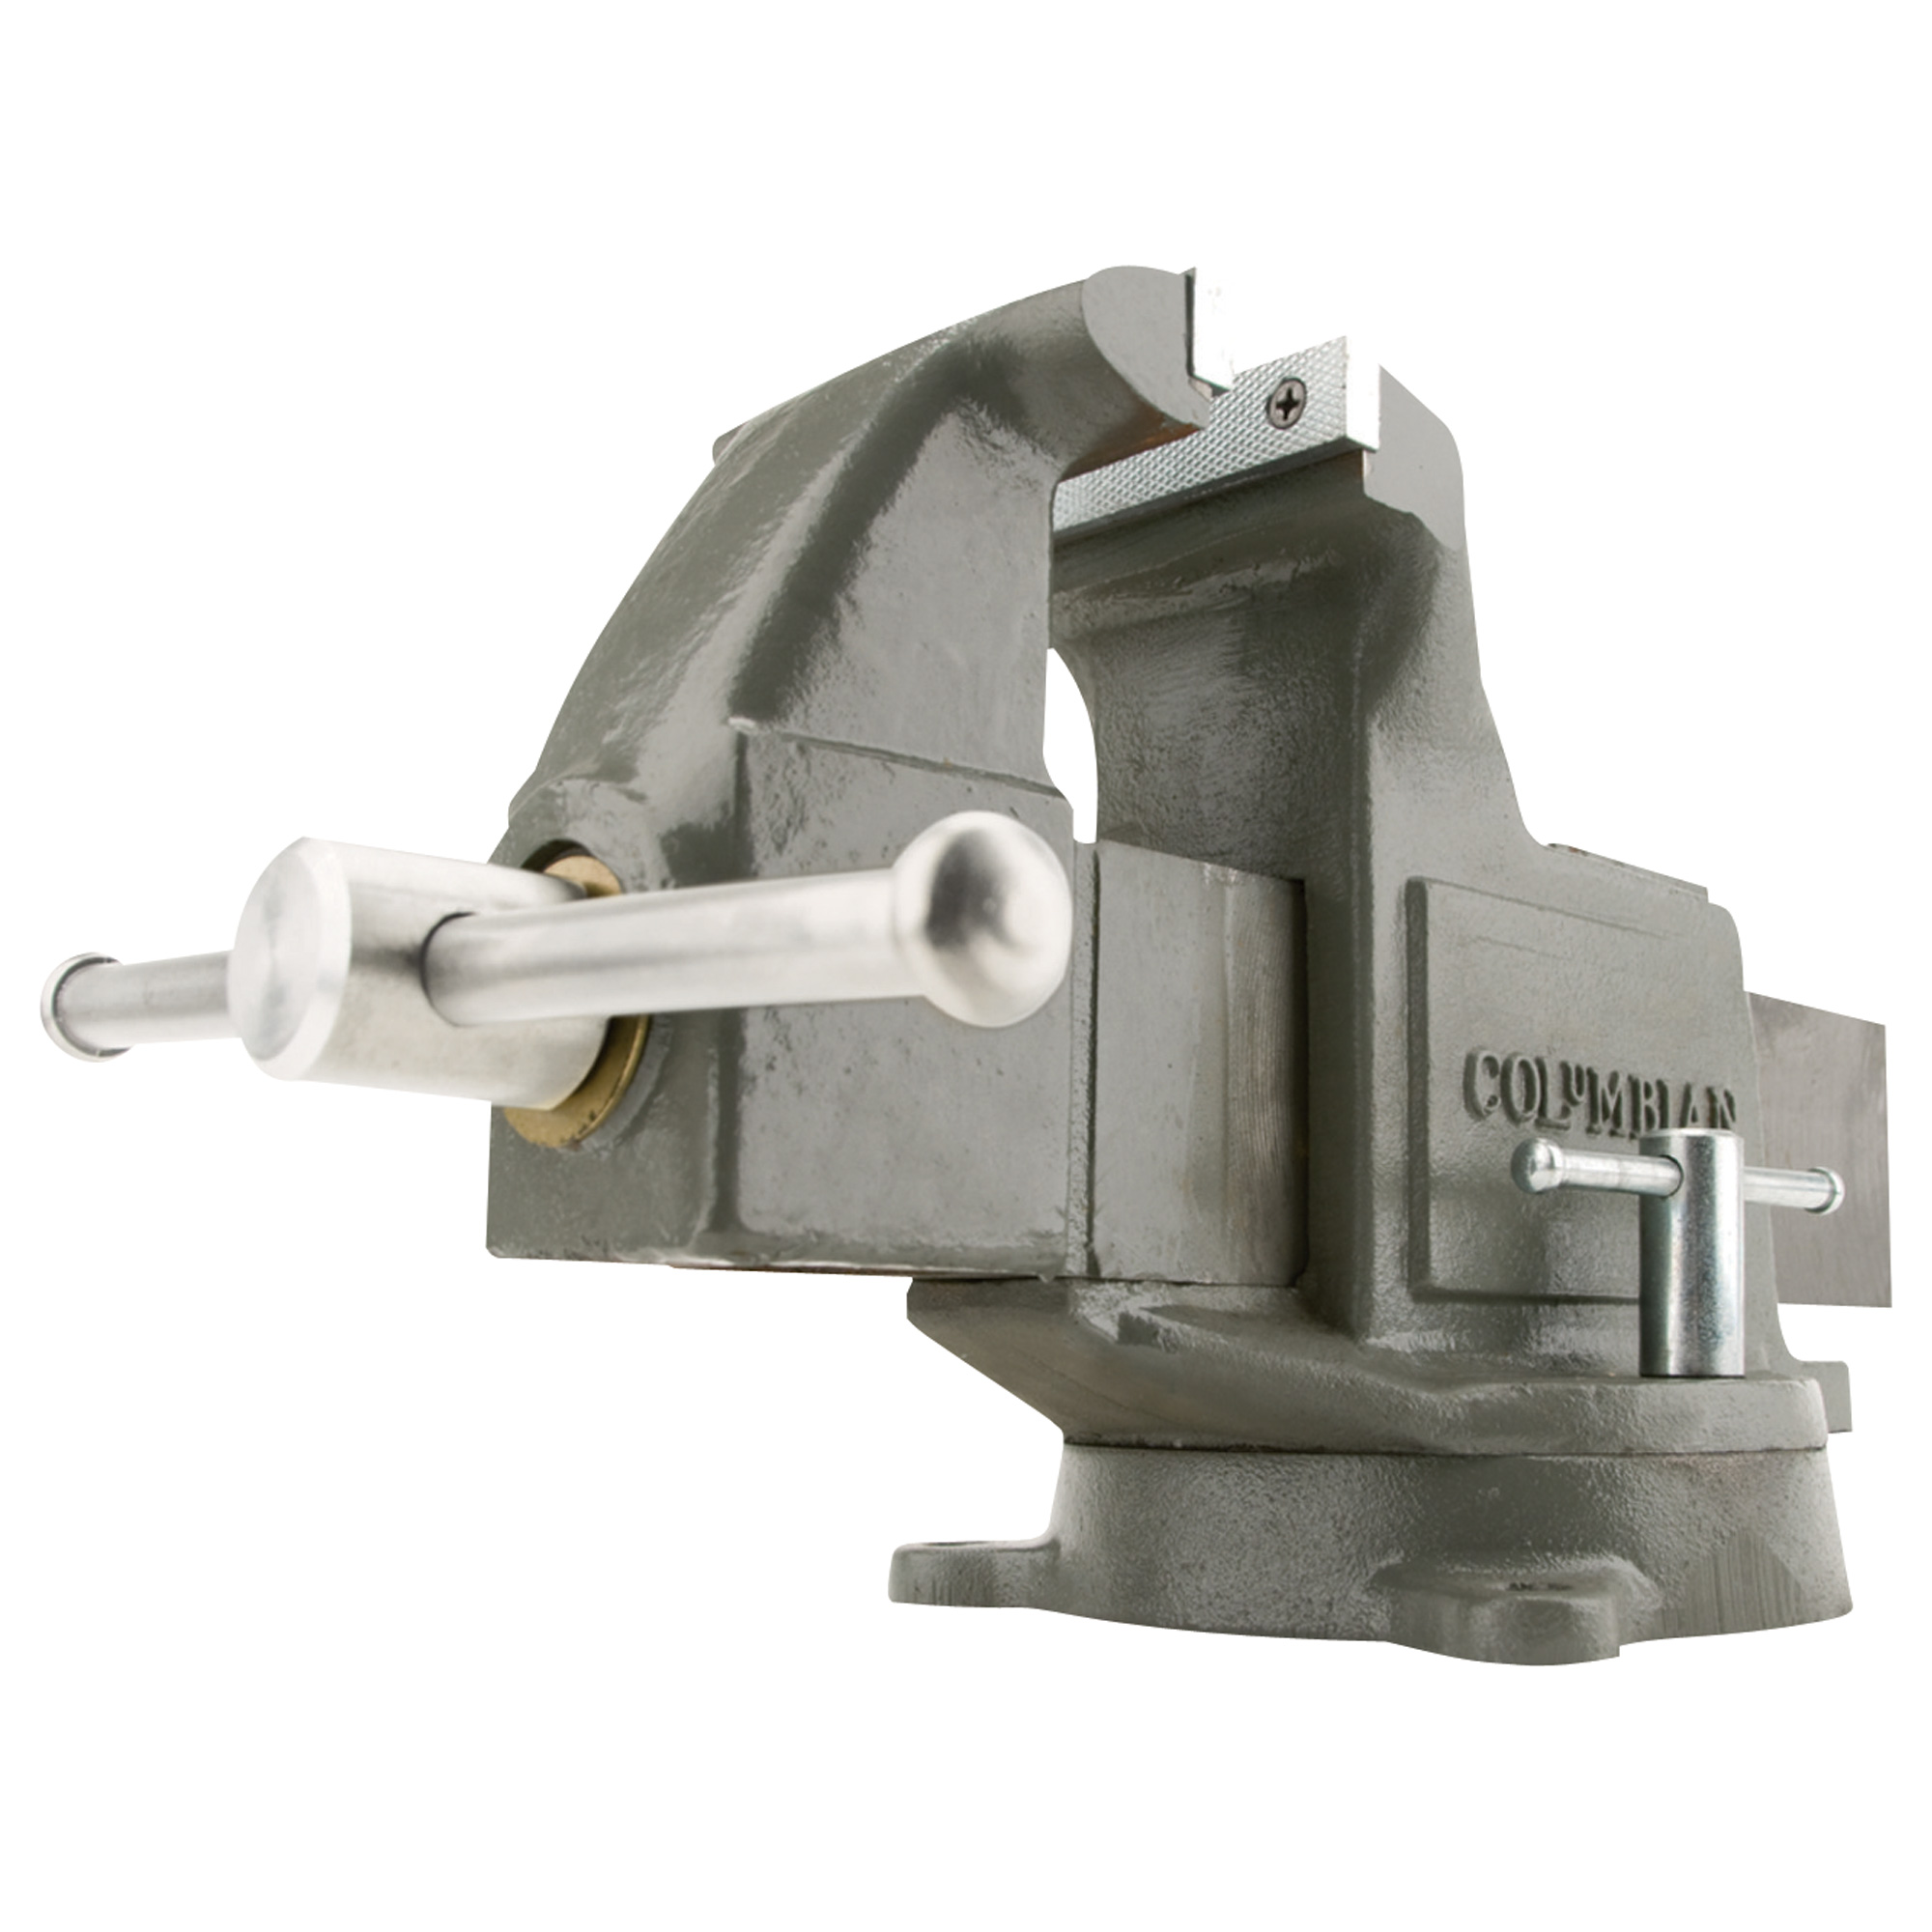 Wilton Columbian Machinist Bench Vise 3 1 2in Jaw Width